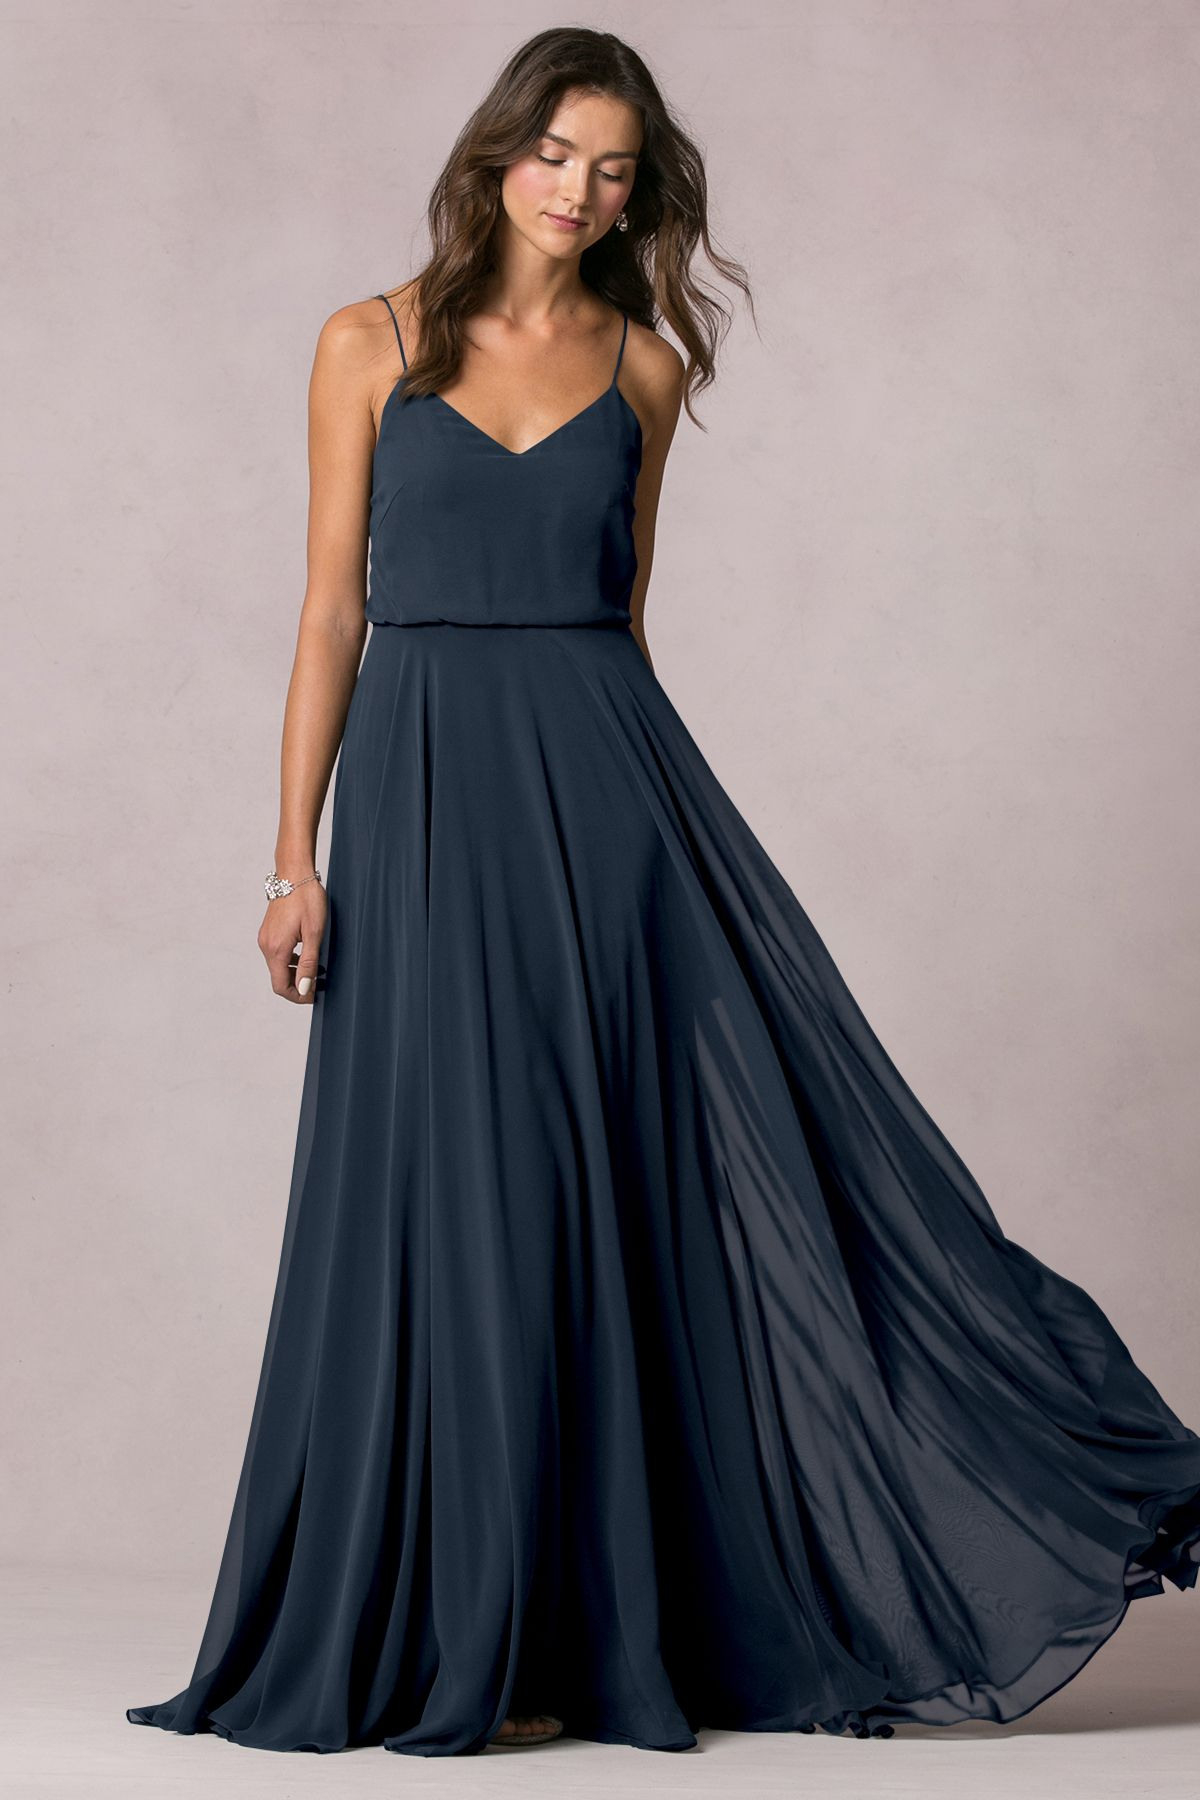 Very Pretty Maxi. Perfect For Weddings. Inesse Dress